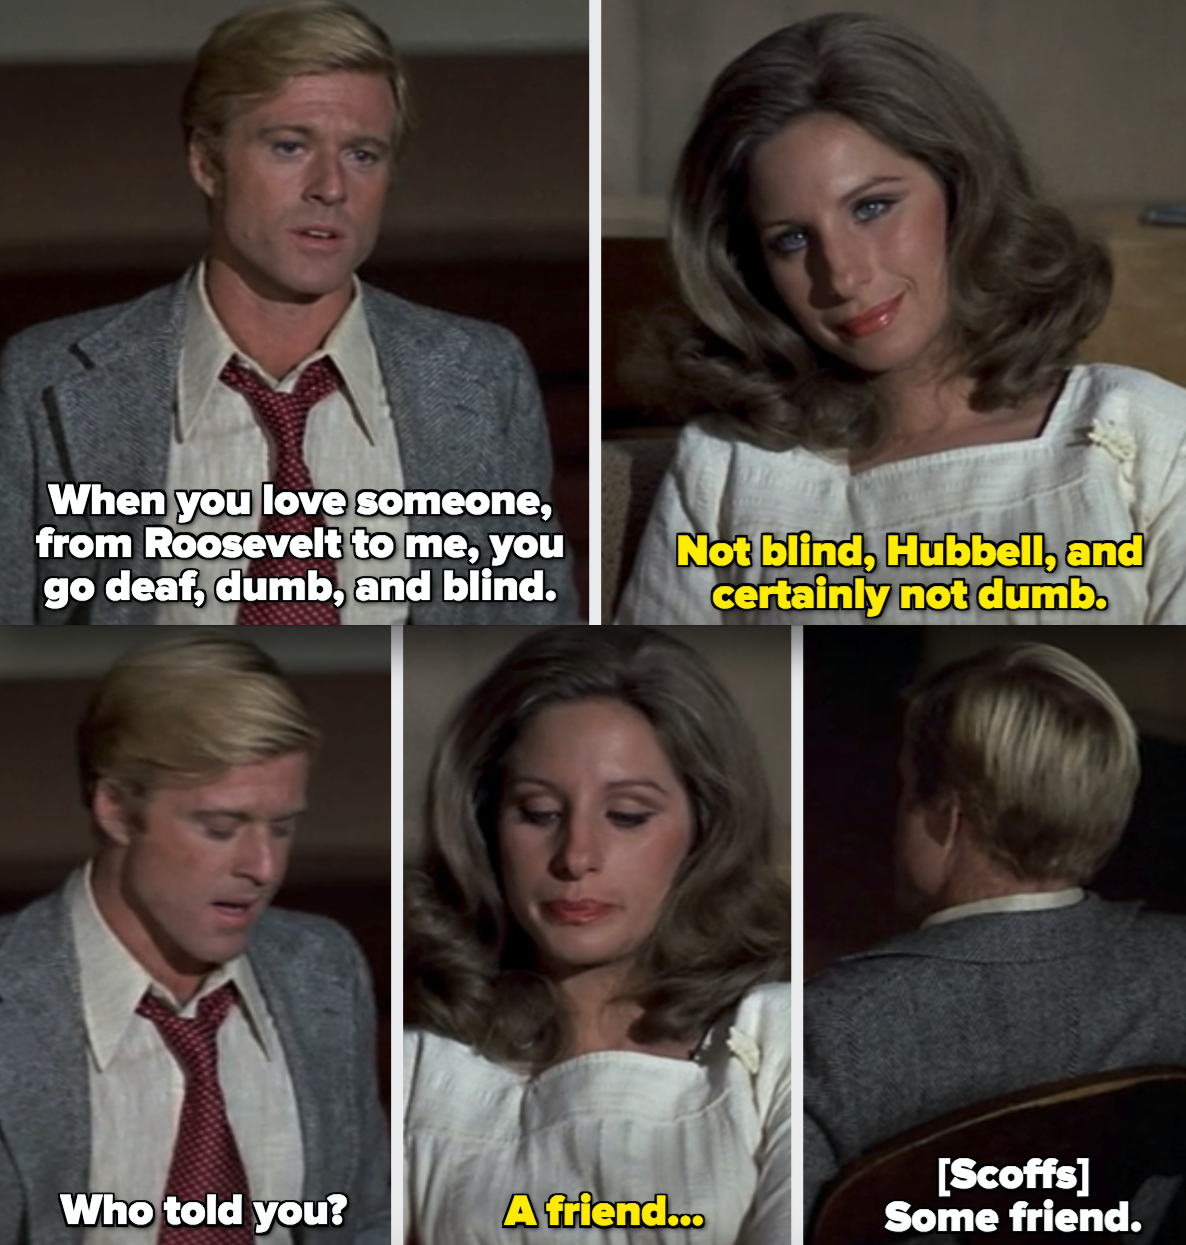 Hubbell and Katie talking about Hubbell cheating on her